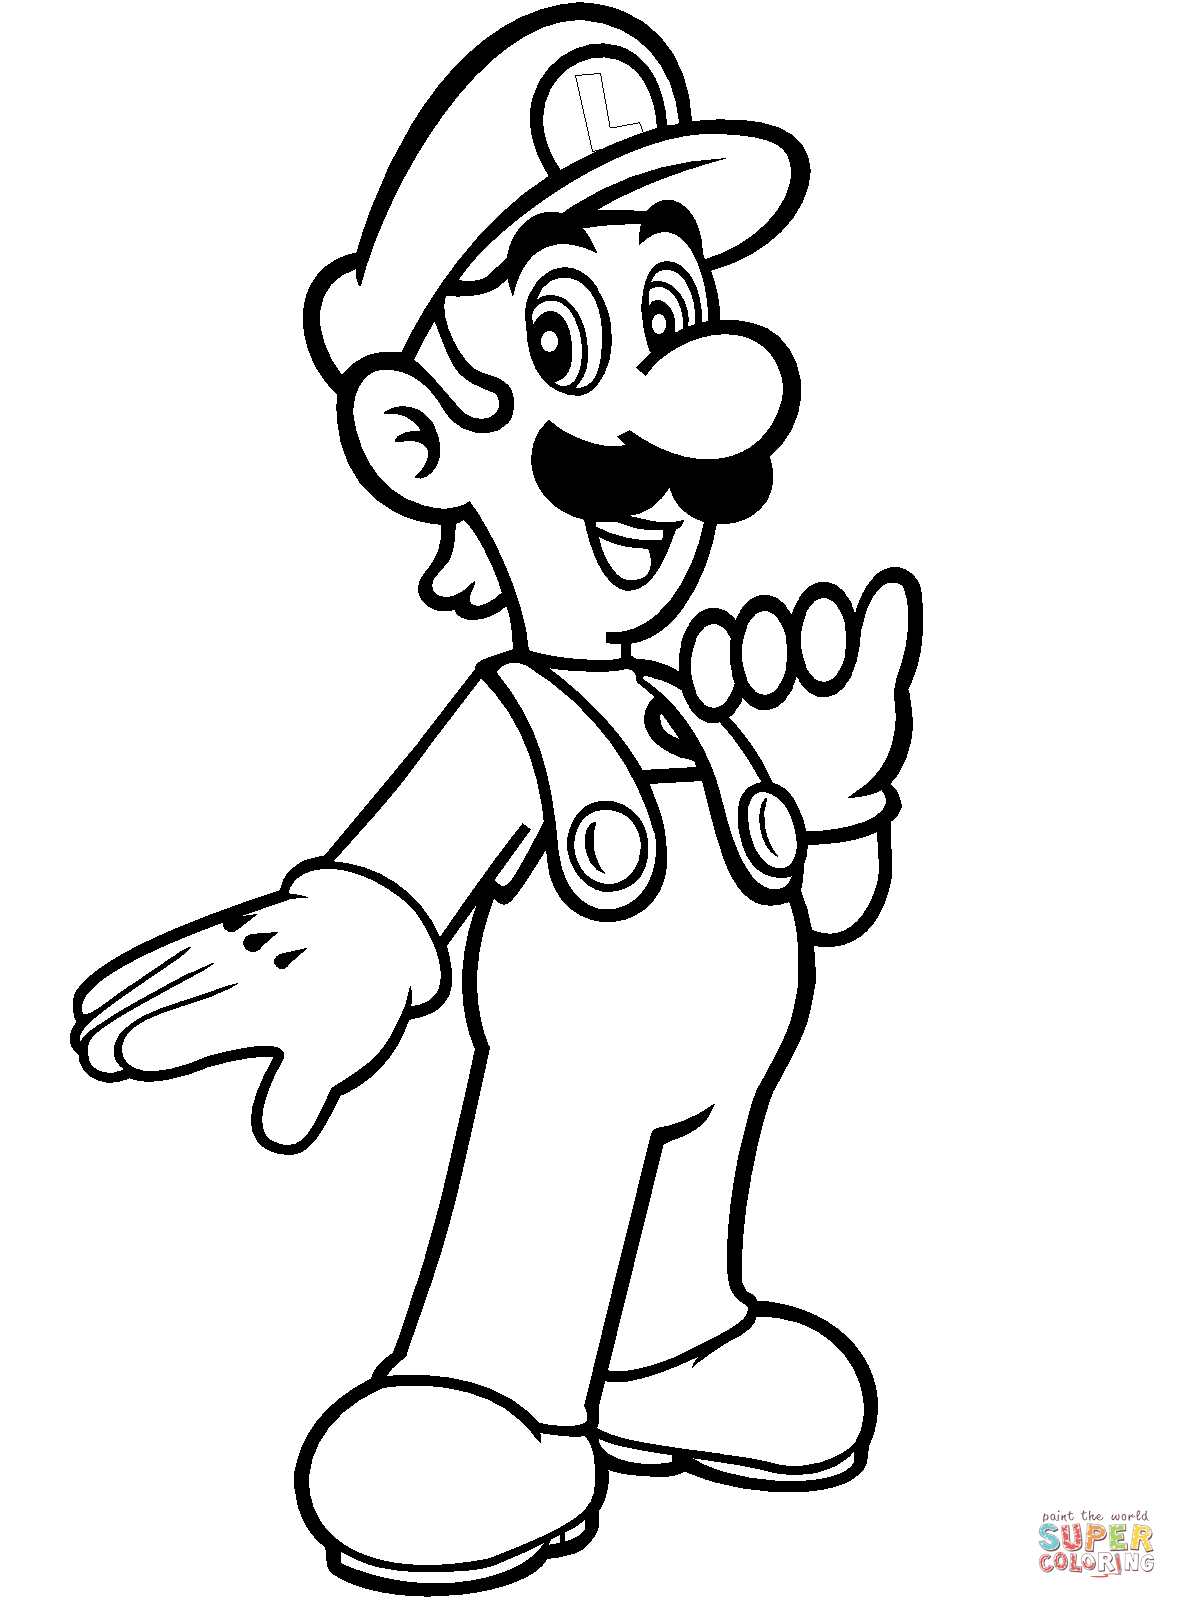 Luigi Odyssey To Print And Color Google Search Thoughts Mario